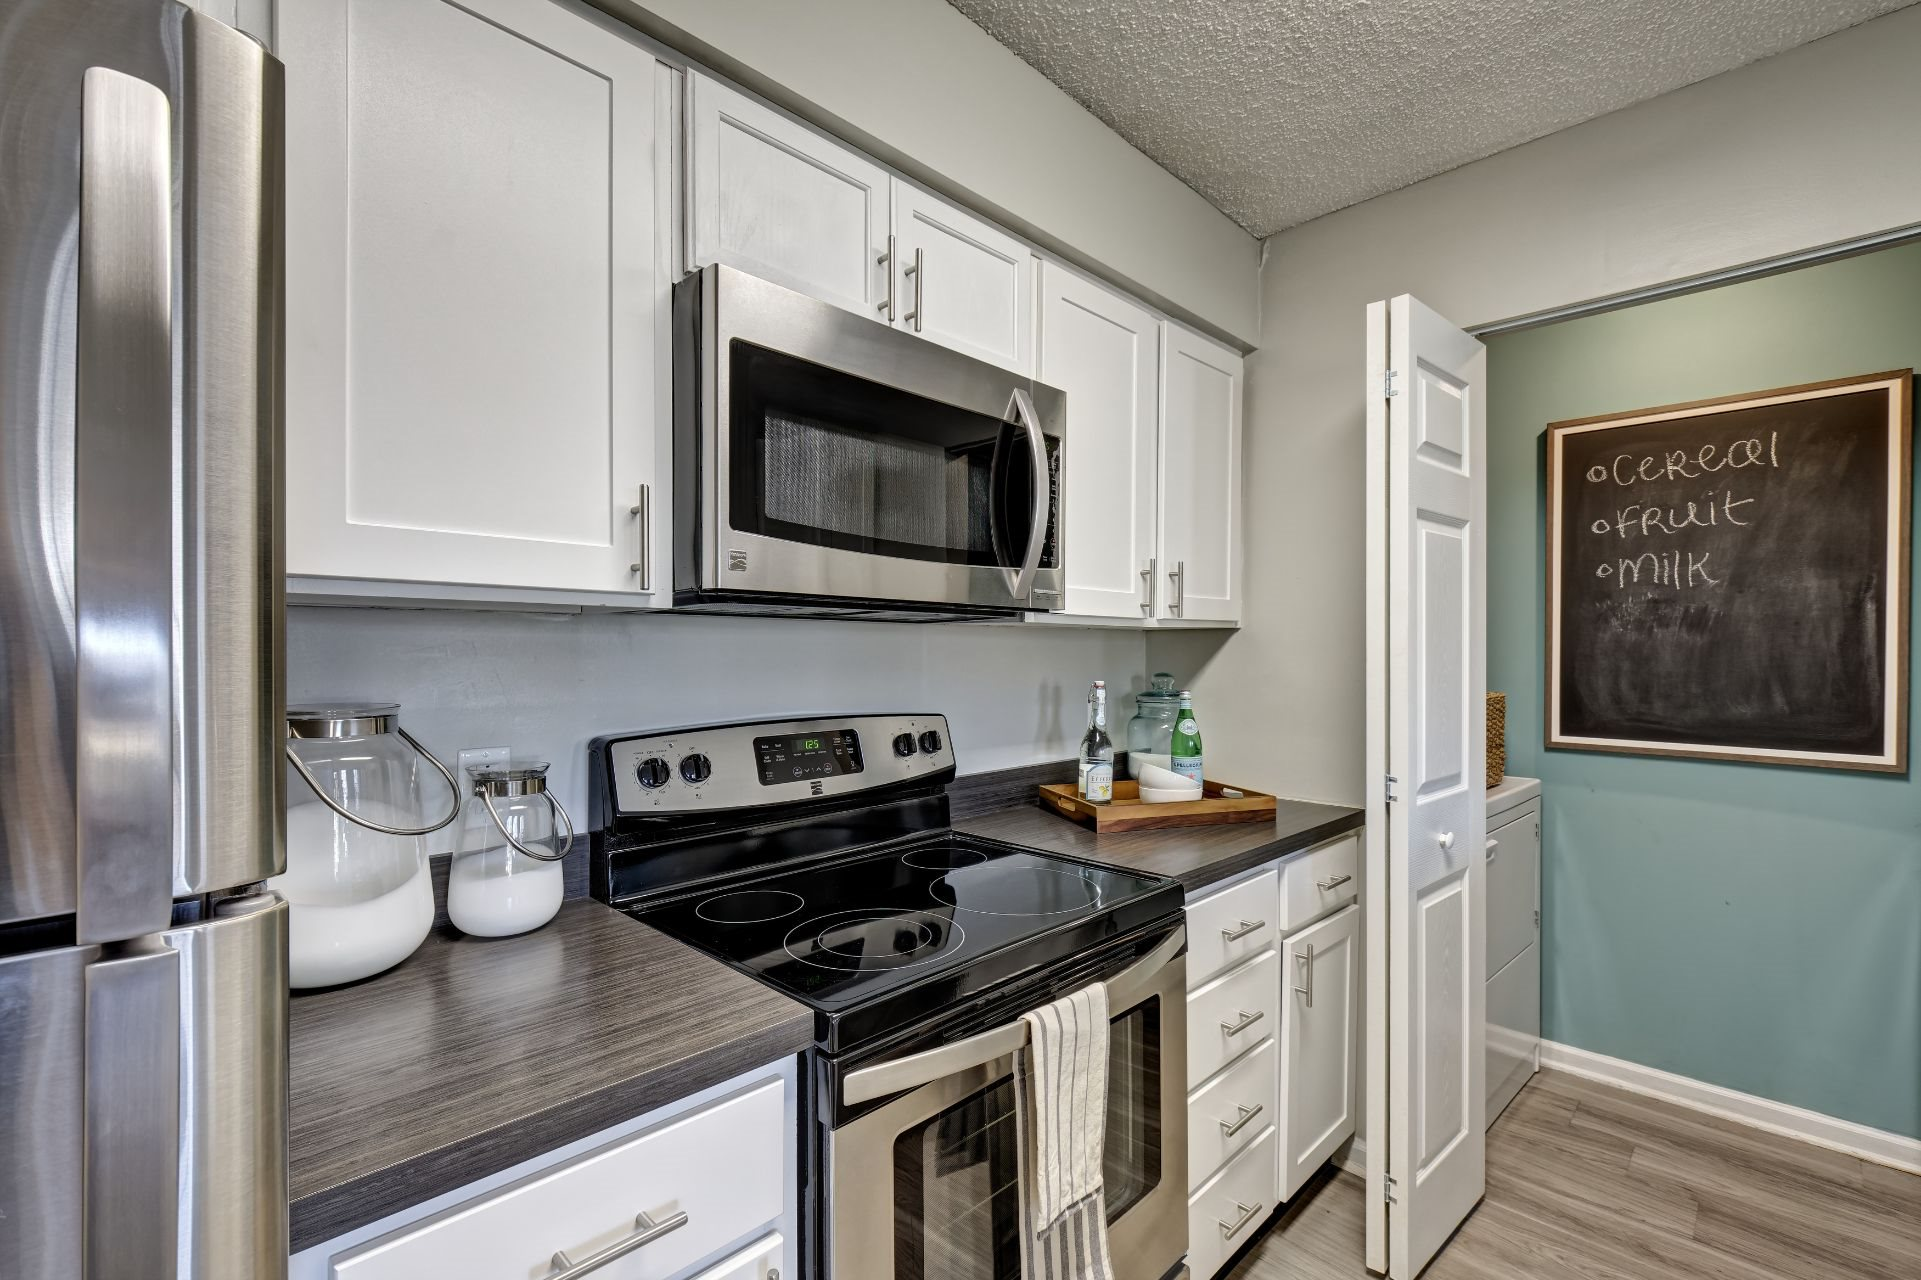 Newly Renovated 1, 2 and 3 Bedroom Luxury Apartments in Lawrenceville NJ with Chef's Kitchen, Stainless Appliances, Breakfast Bar, Washer Dryer -1000 Steward Crossing Way Lawrenceville NJ 08646